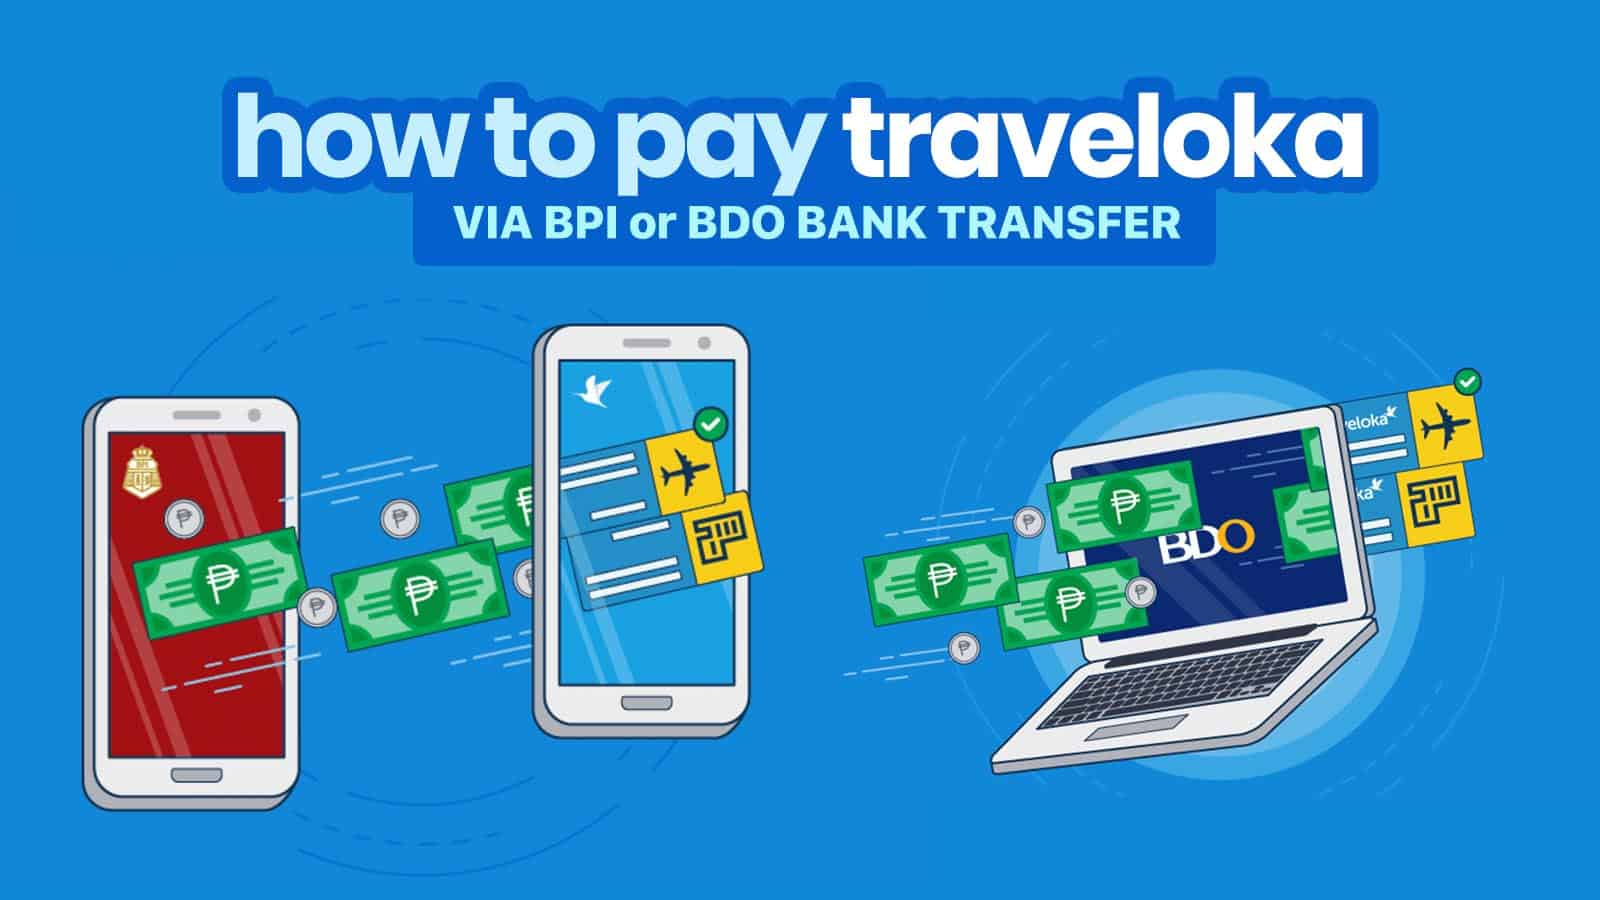 How to Pay Traveloka via BDO or BPI Transfer | The Poor